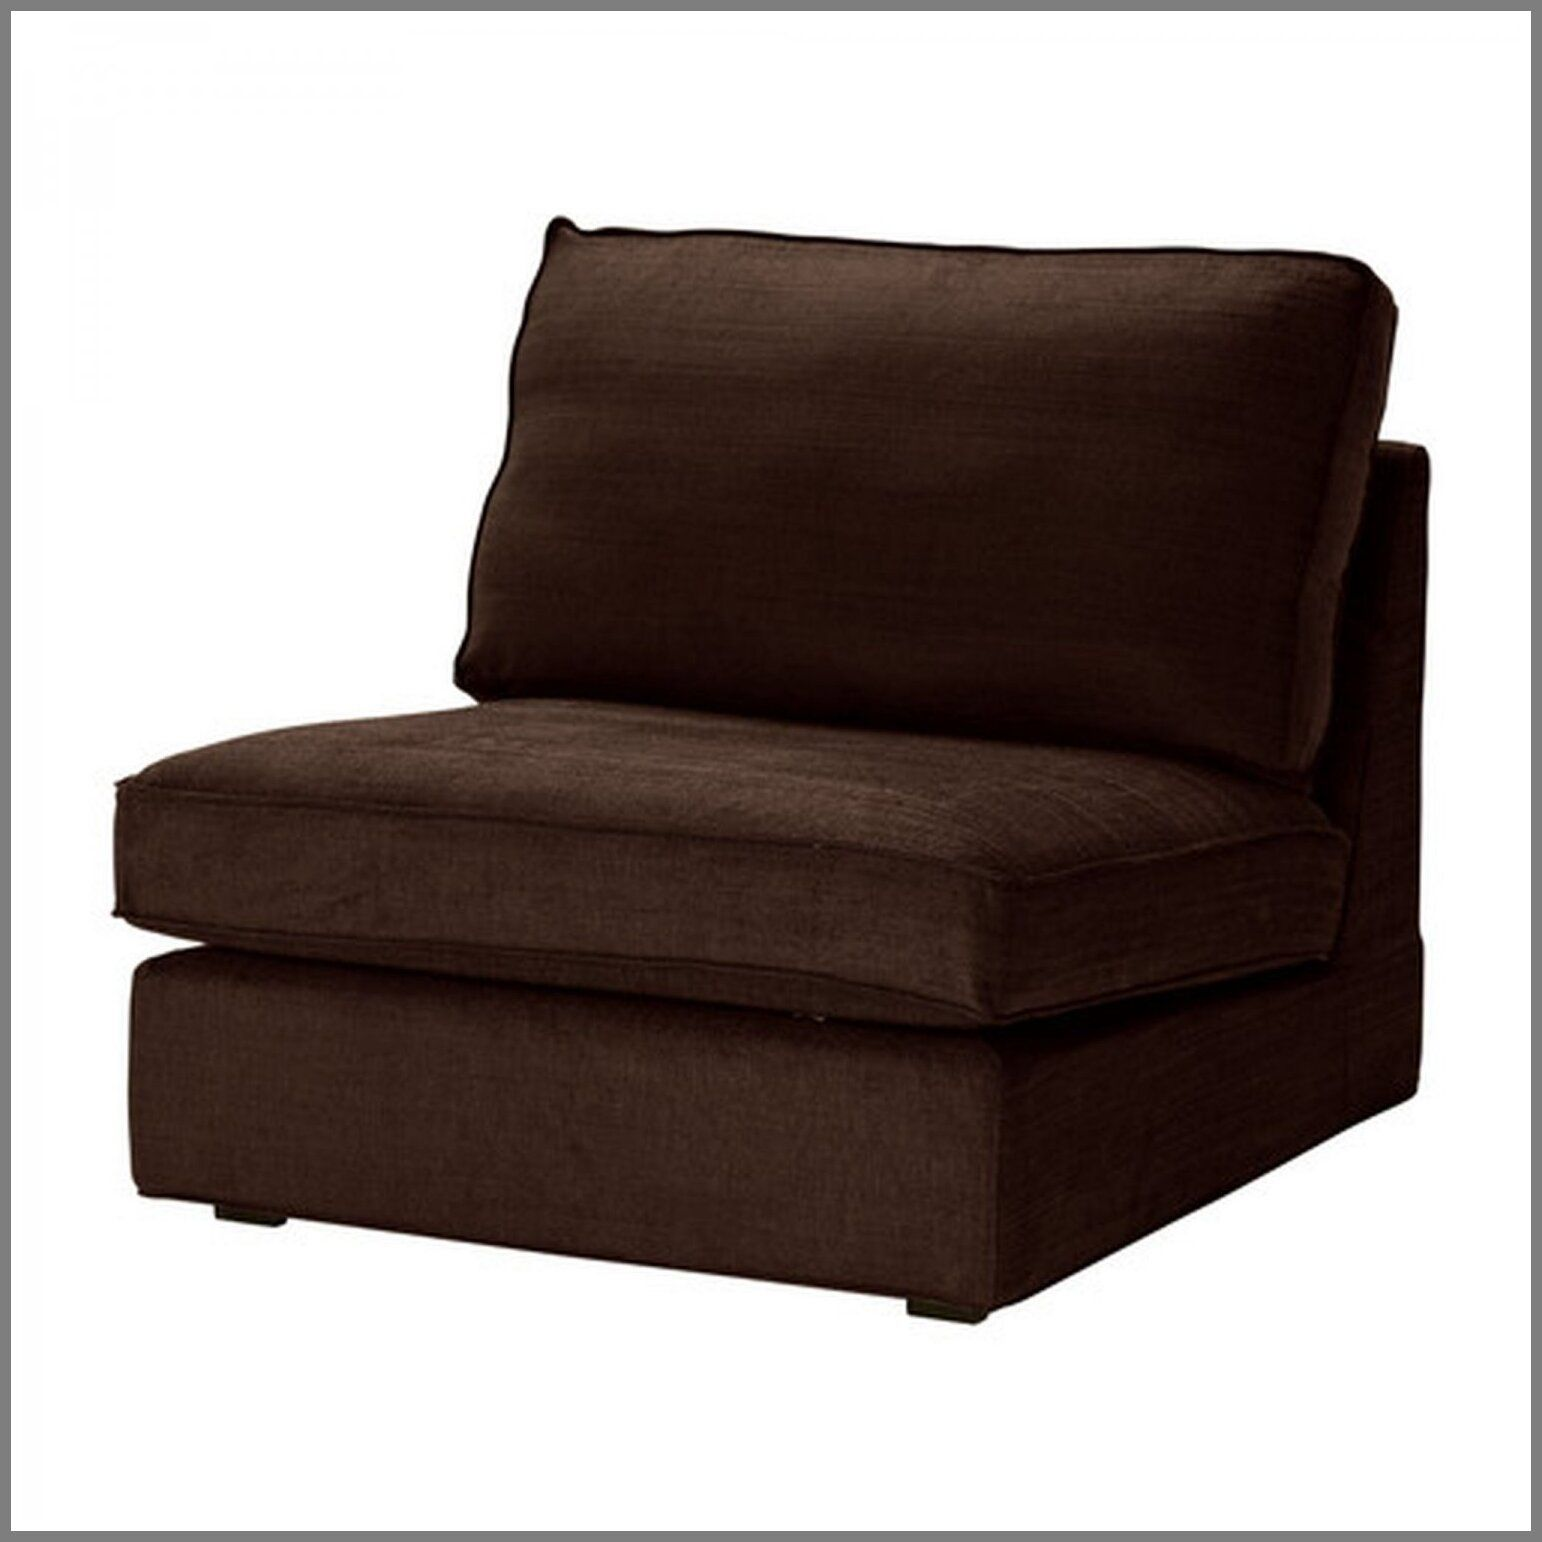 57 reference of sofa cover dark brown in 2020 Slipcovers